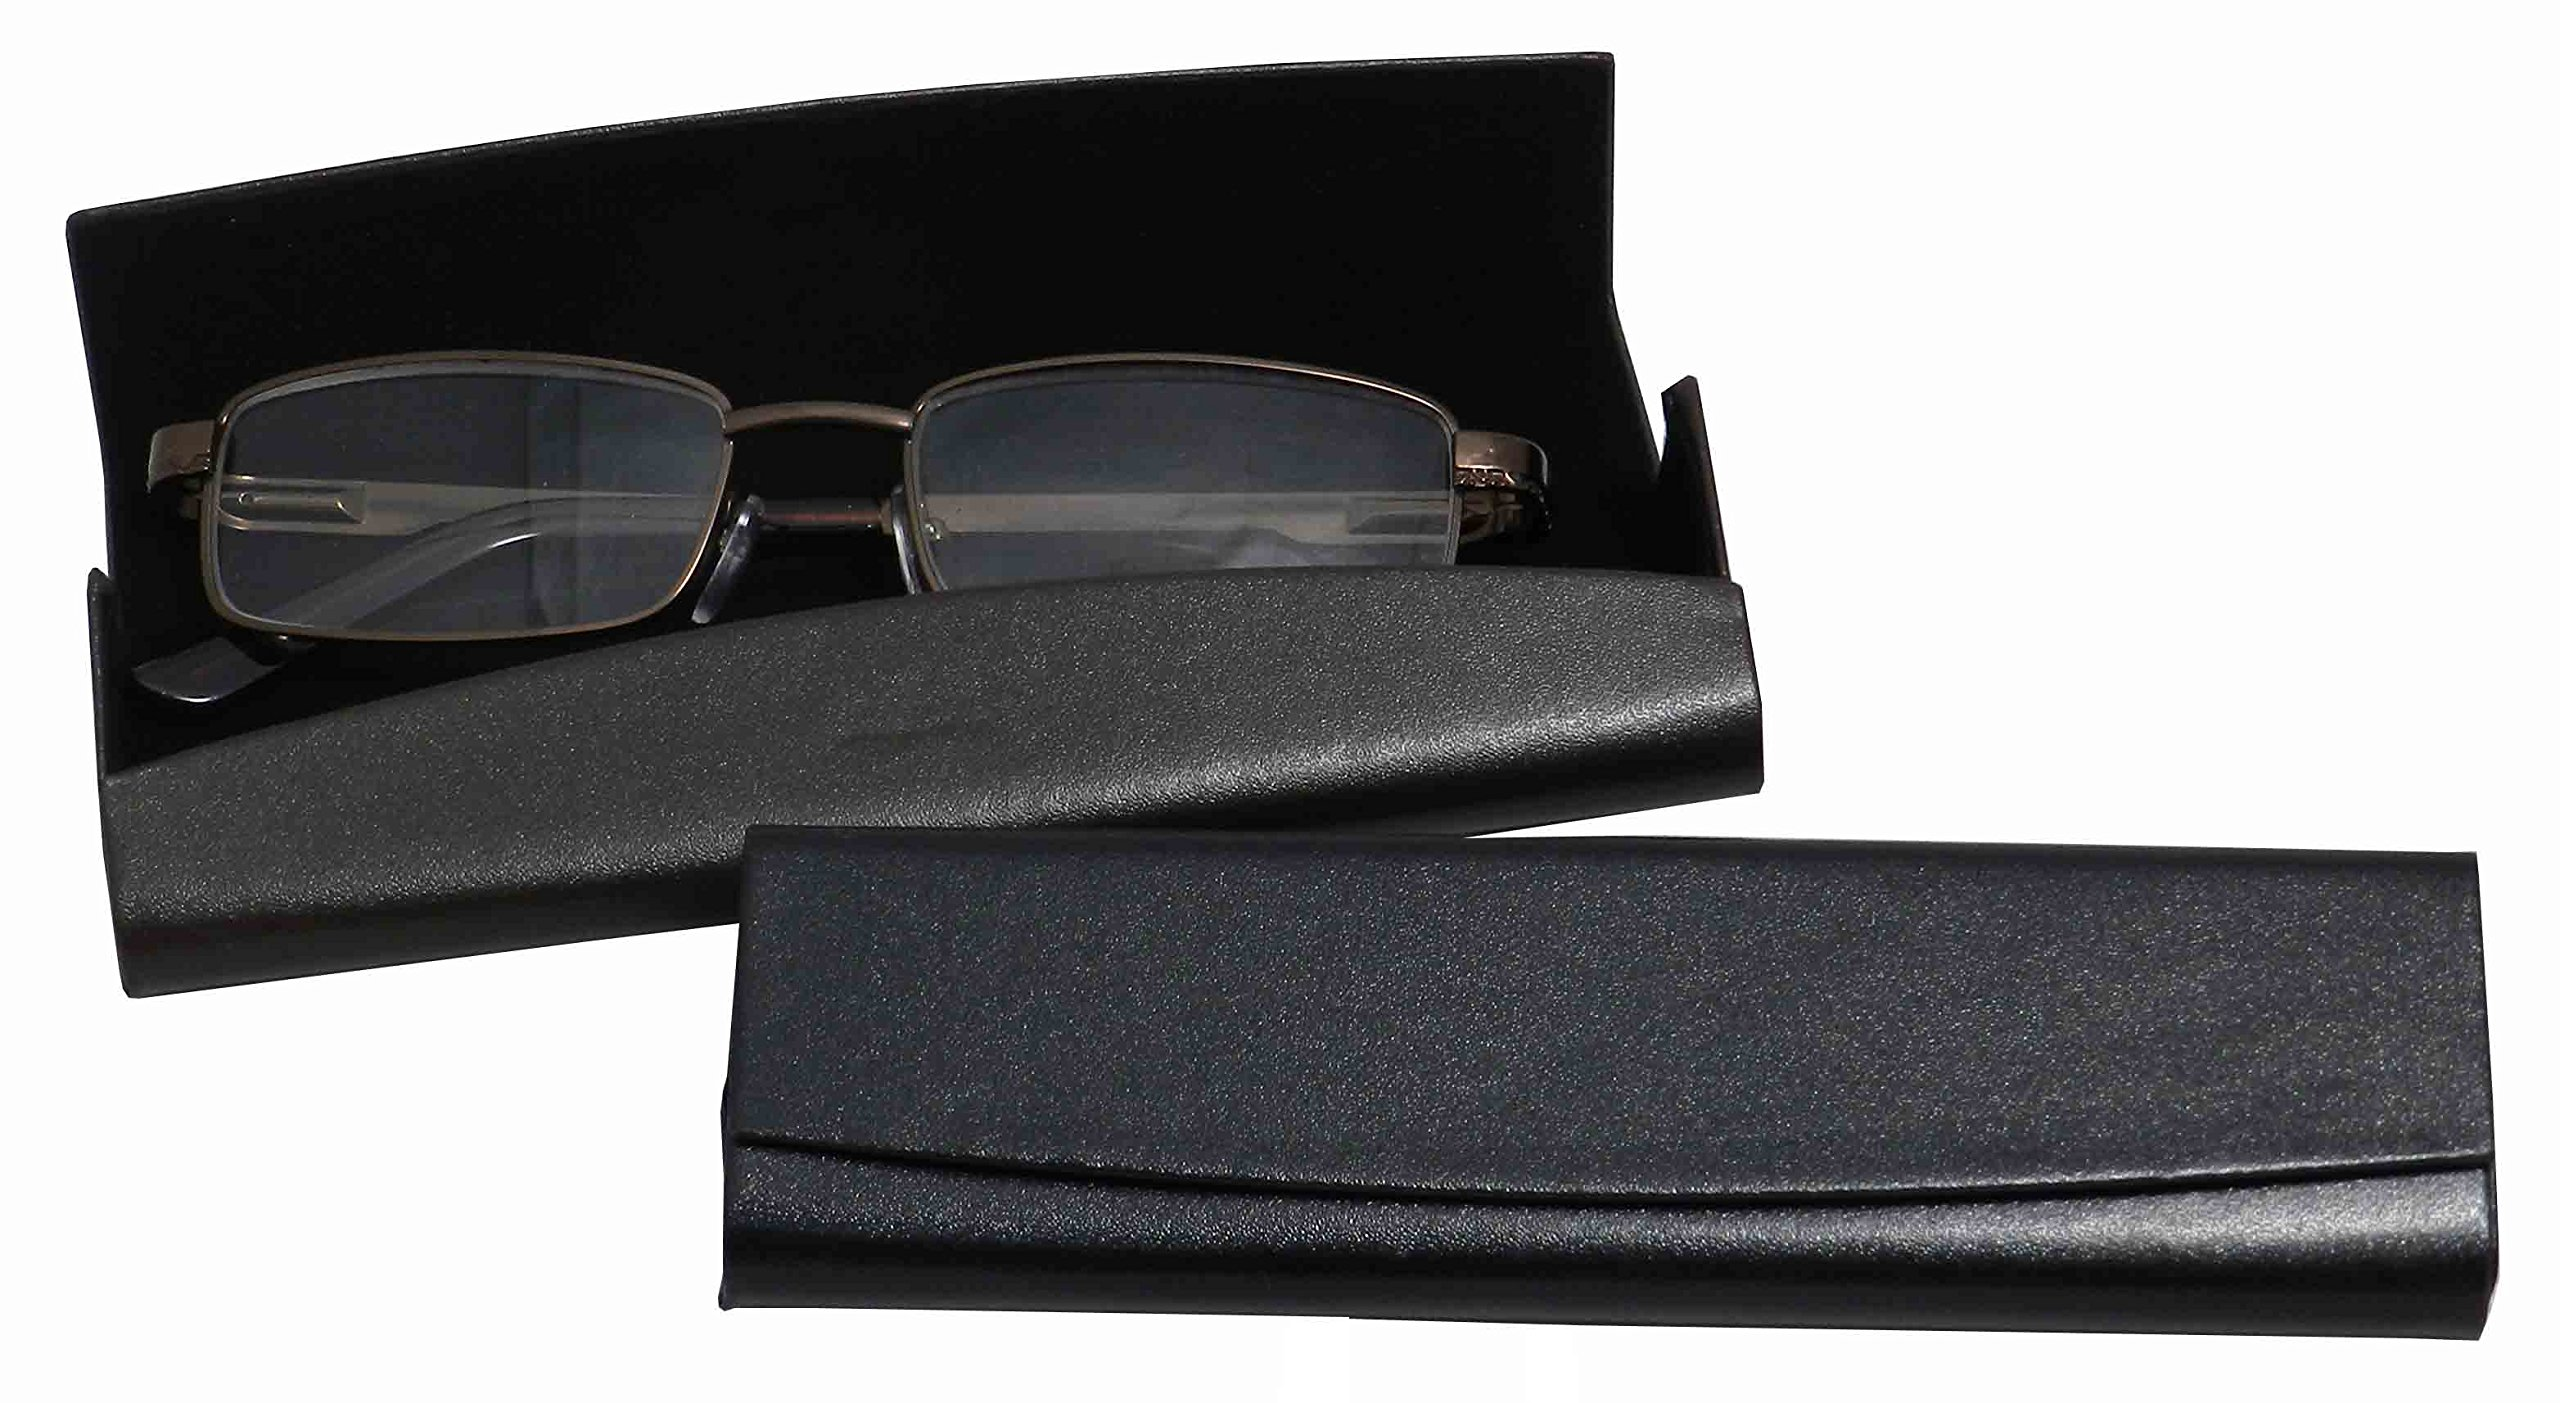 Smooth Faux Leather Eyeglass Case Magnetic Front Closure Black Fits Small Frames by Ron's Optical (Image #3)